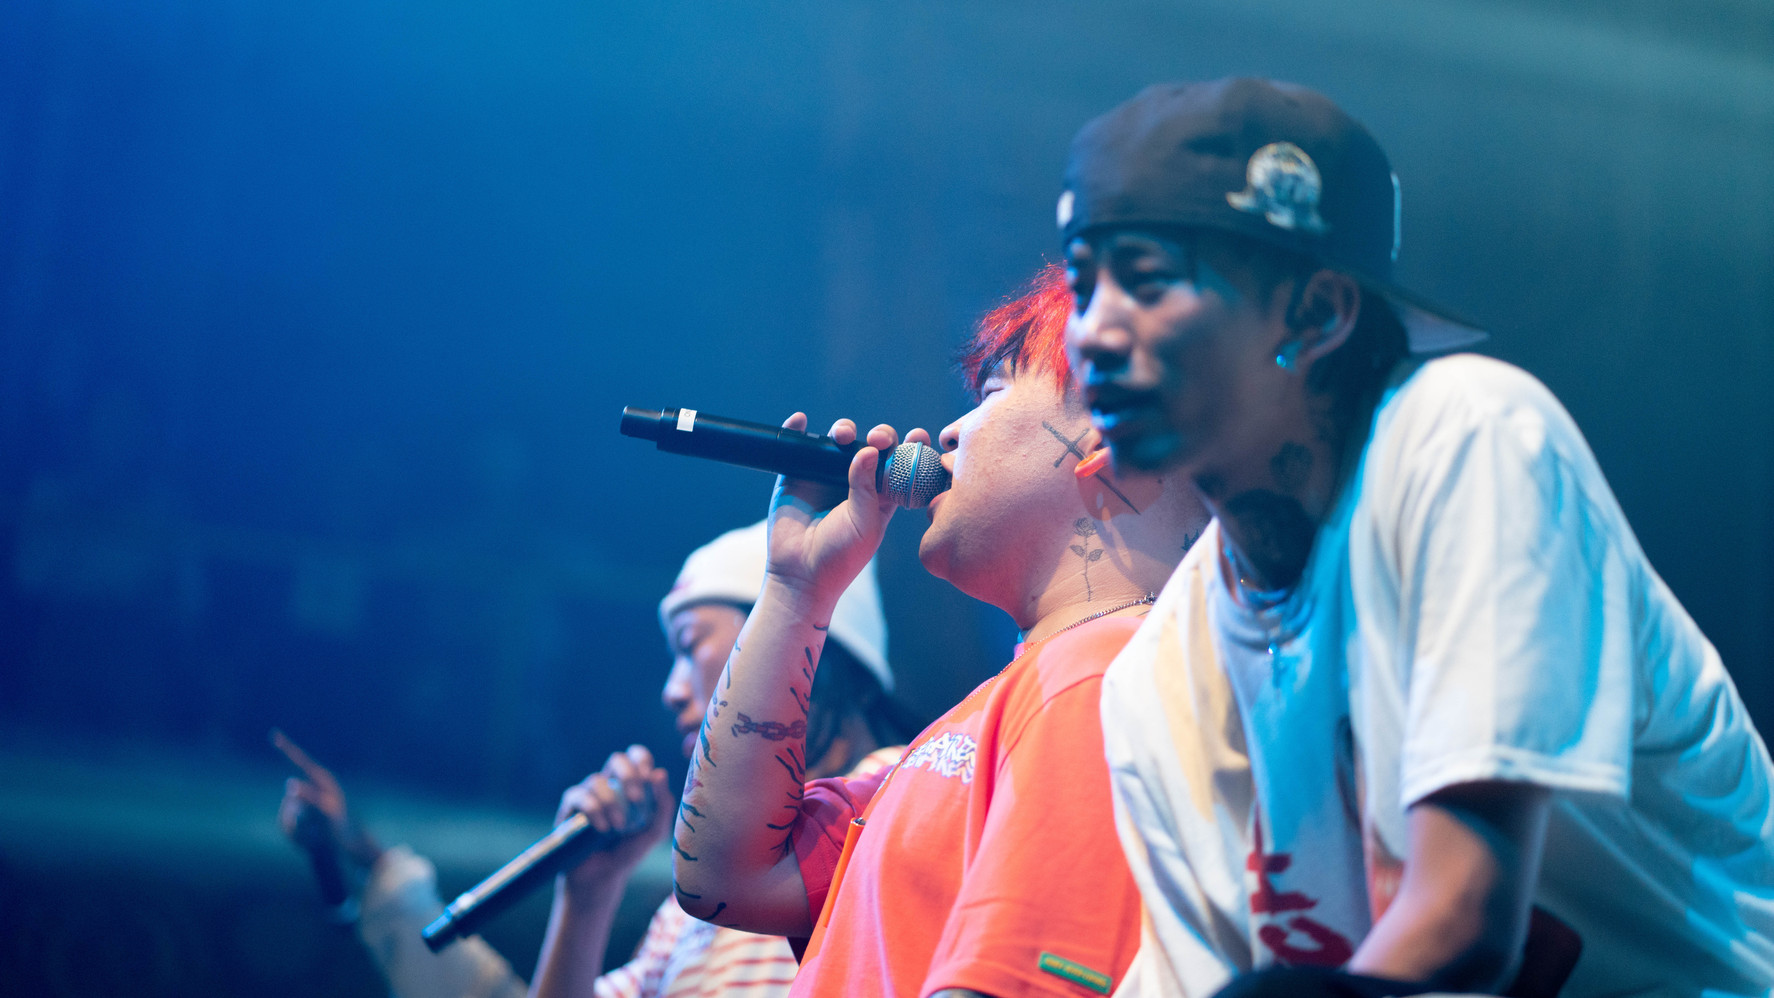 5.22.19 | Higher Brothers | Regency Ballroom, SF, CA | Photographer: Maurqui Burks